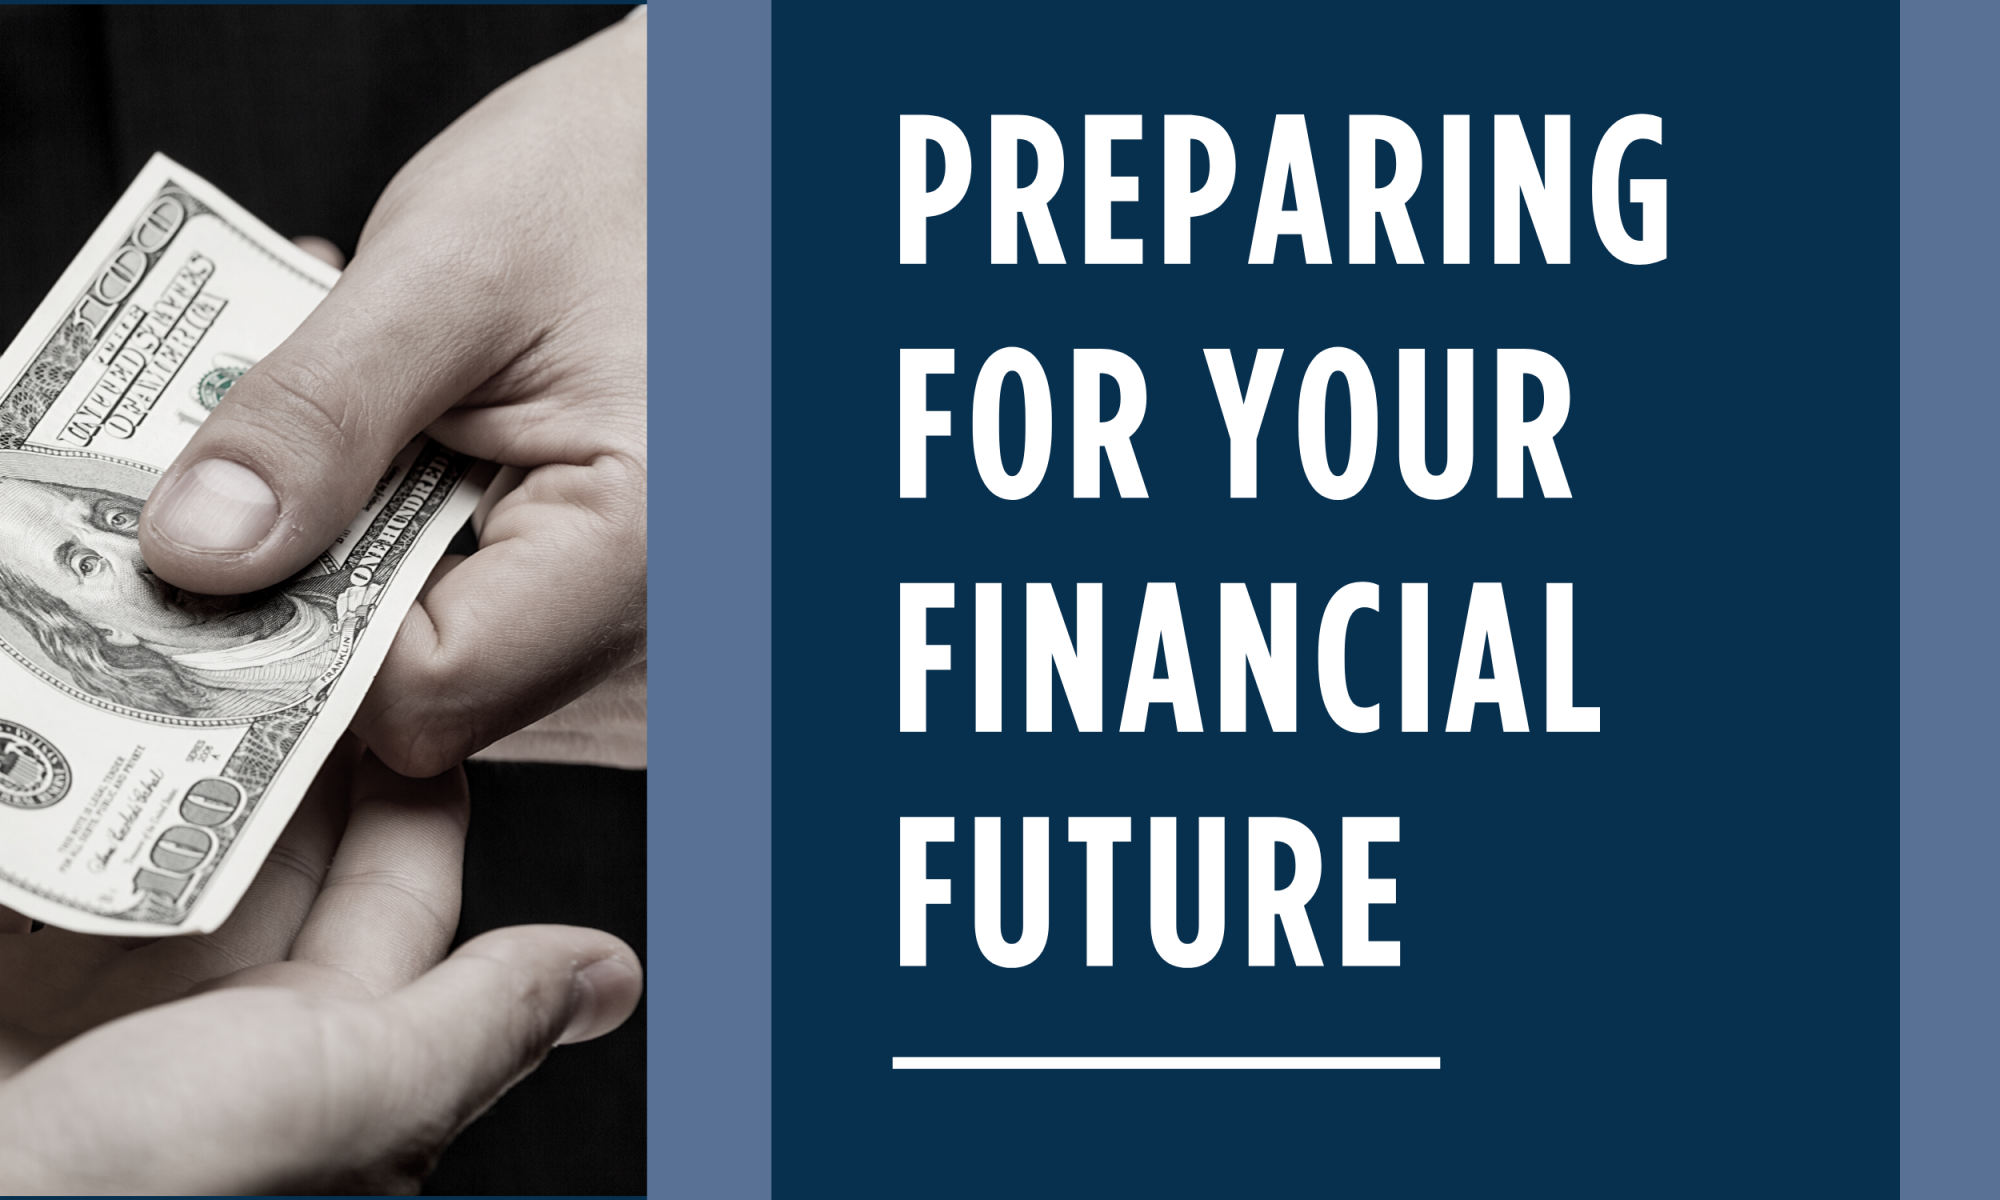 Preparing for your financial future